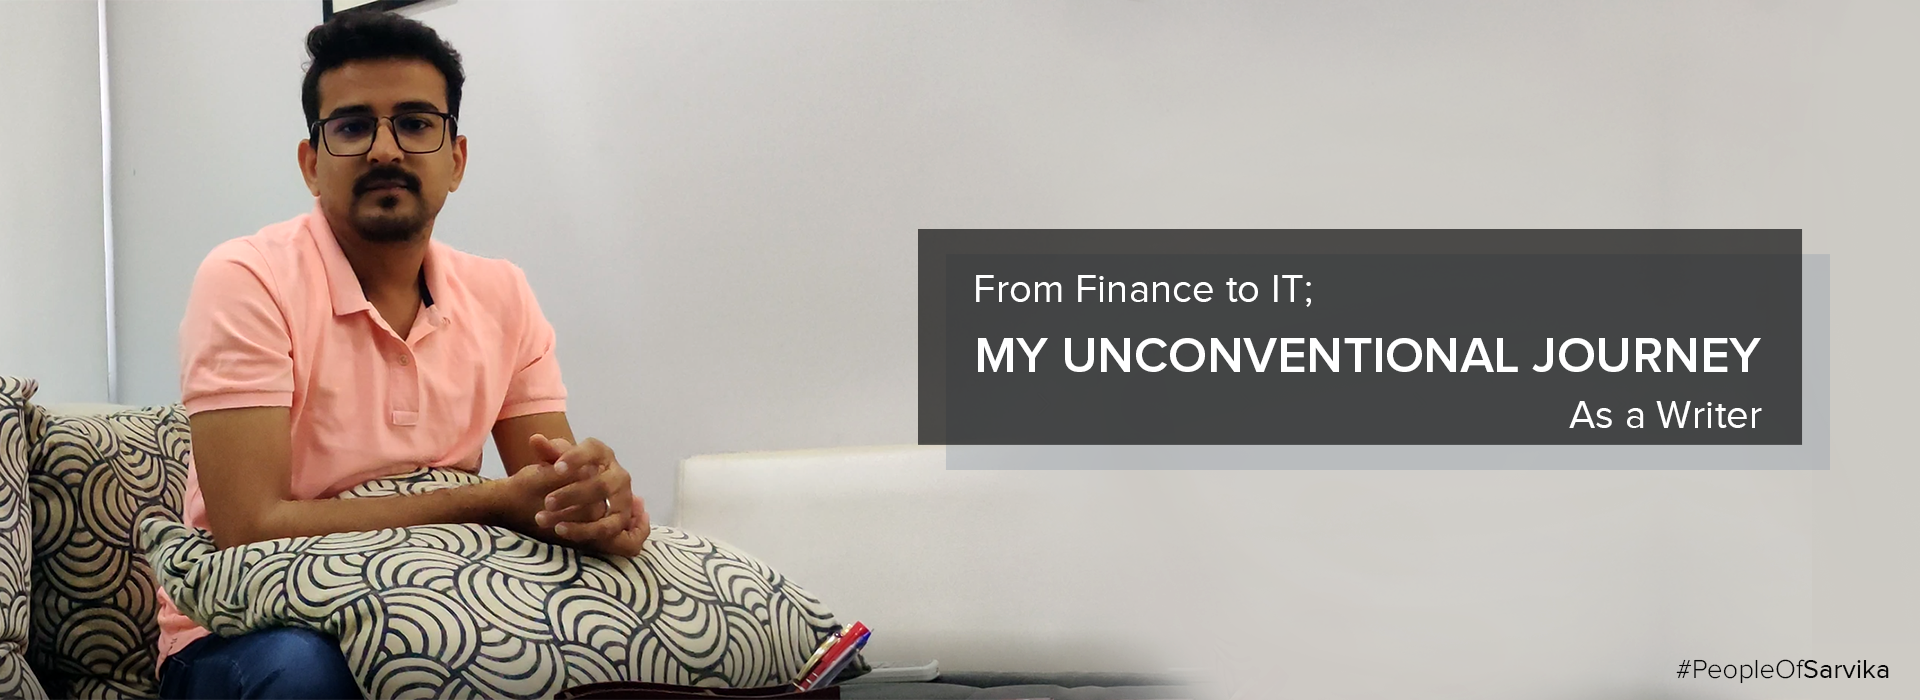 From Finance to IT My Unconventional Journey as a writer _Mayur Ghiya_Featured Image